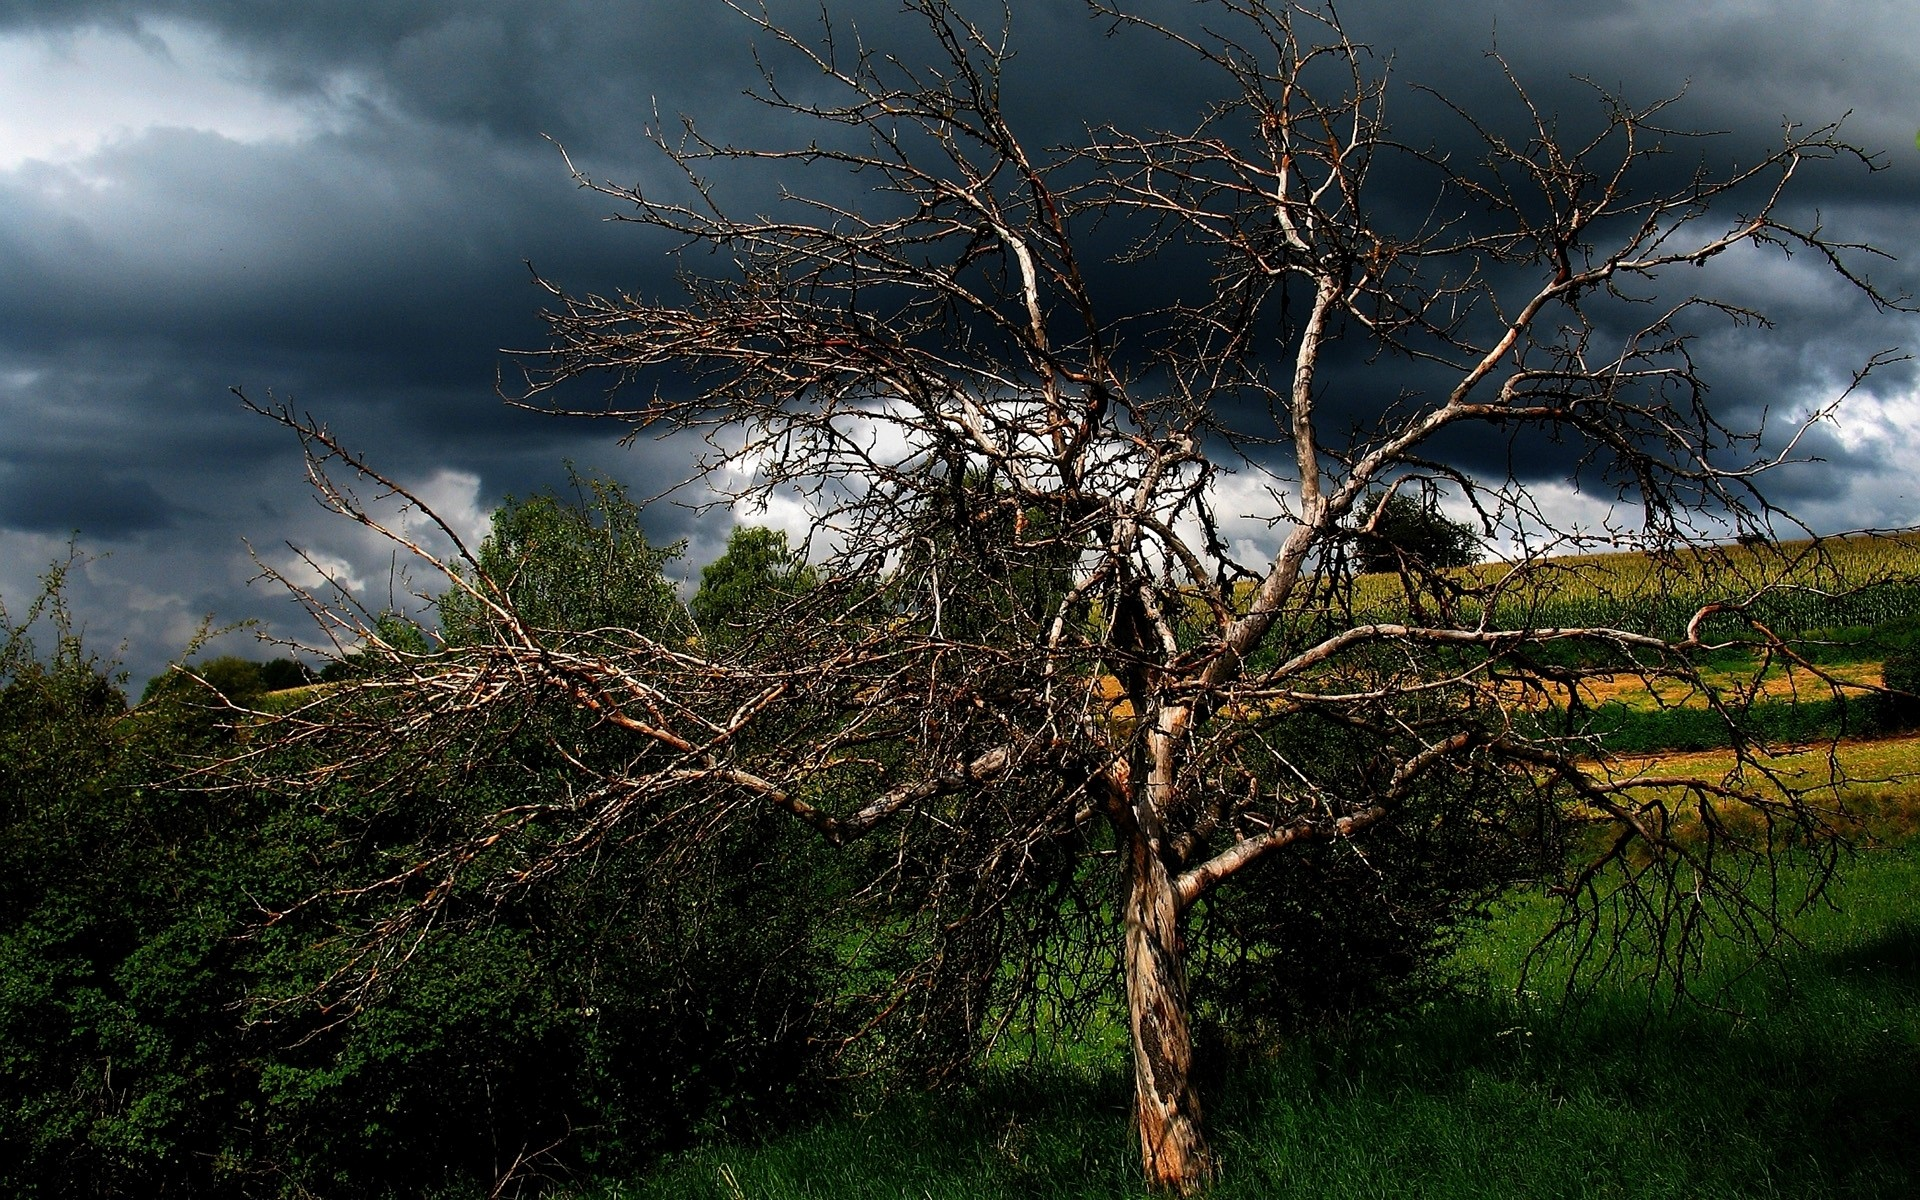 1920x1200 Splendid Tree Field Stormy Sky wallpapers and stock photos